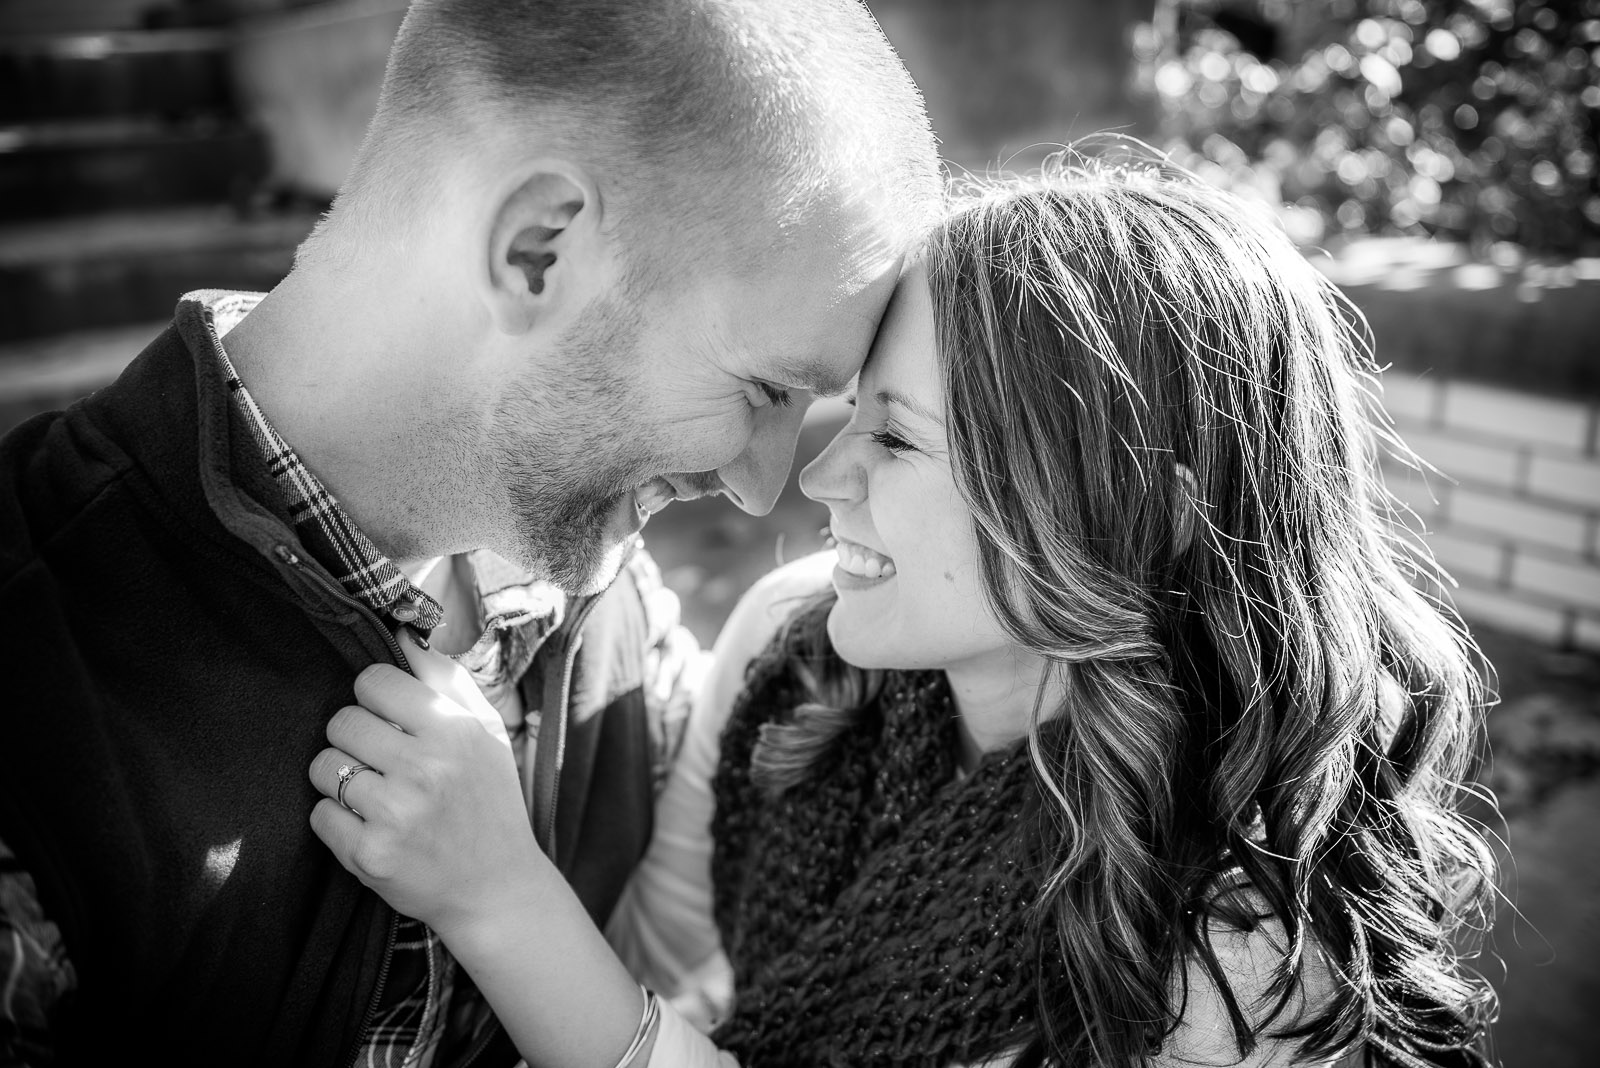 eric_and_christy_photographers_blog_ashleystorm-17